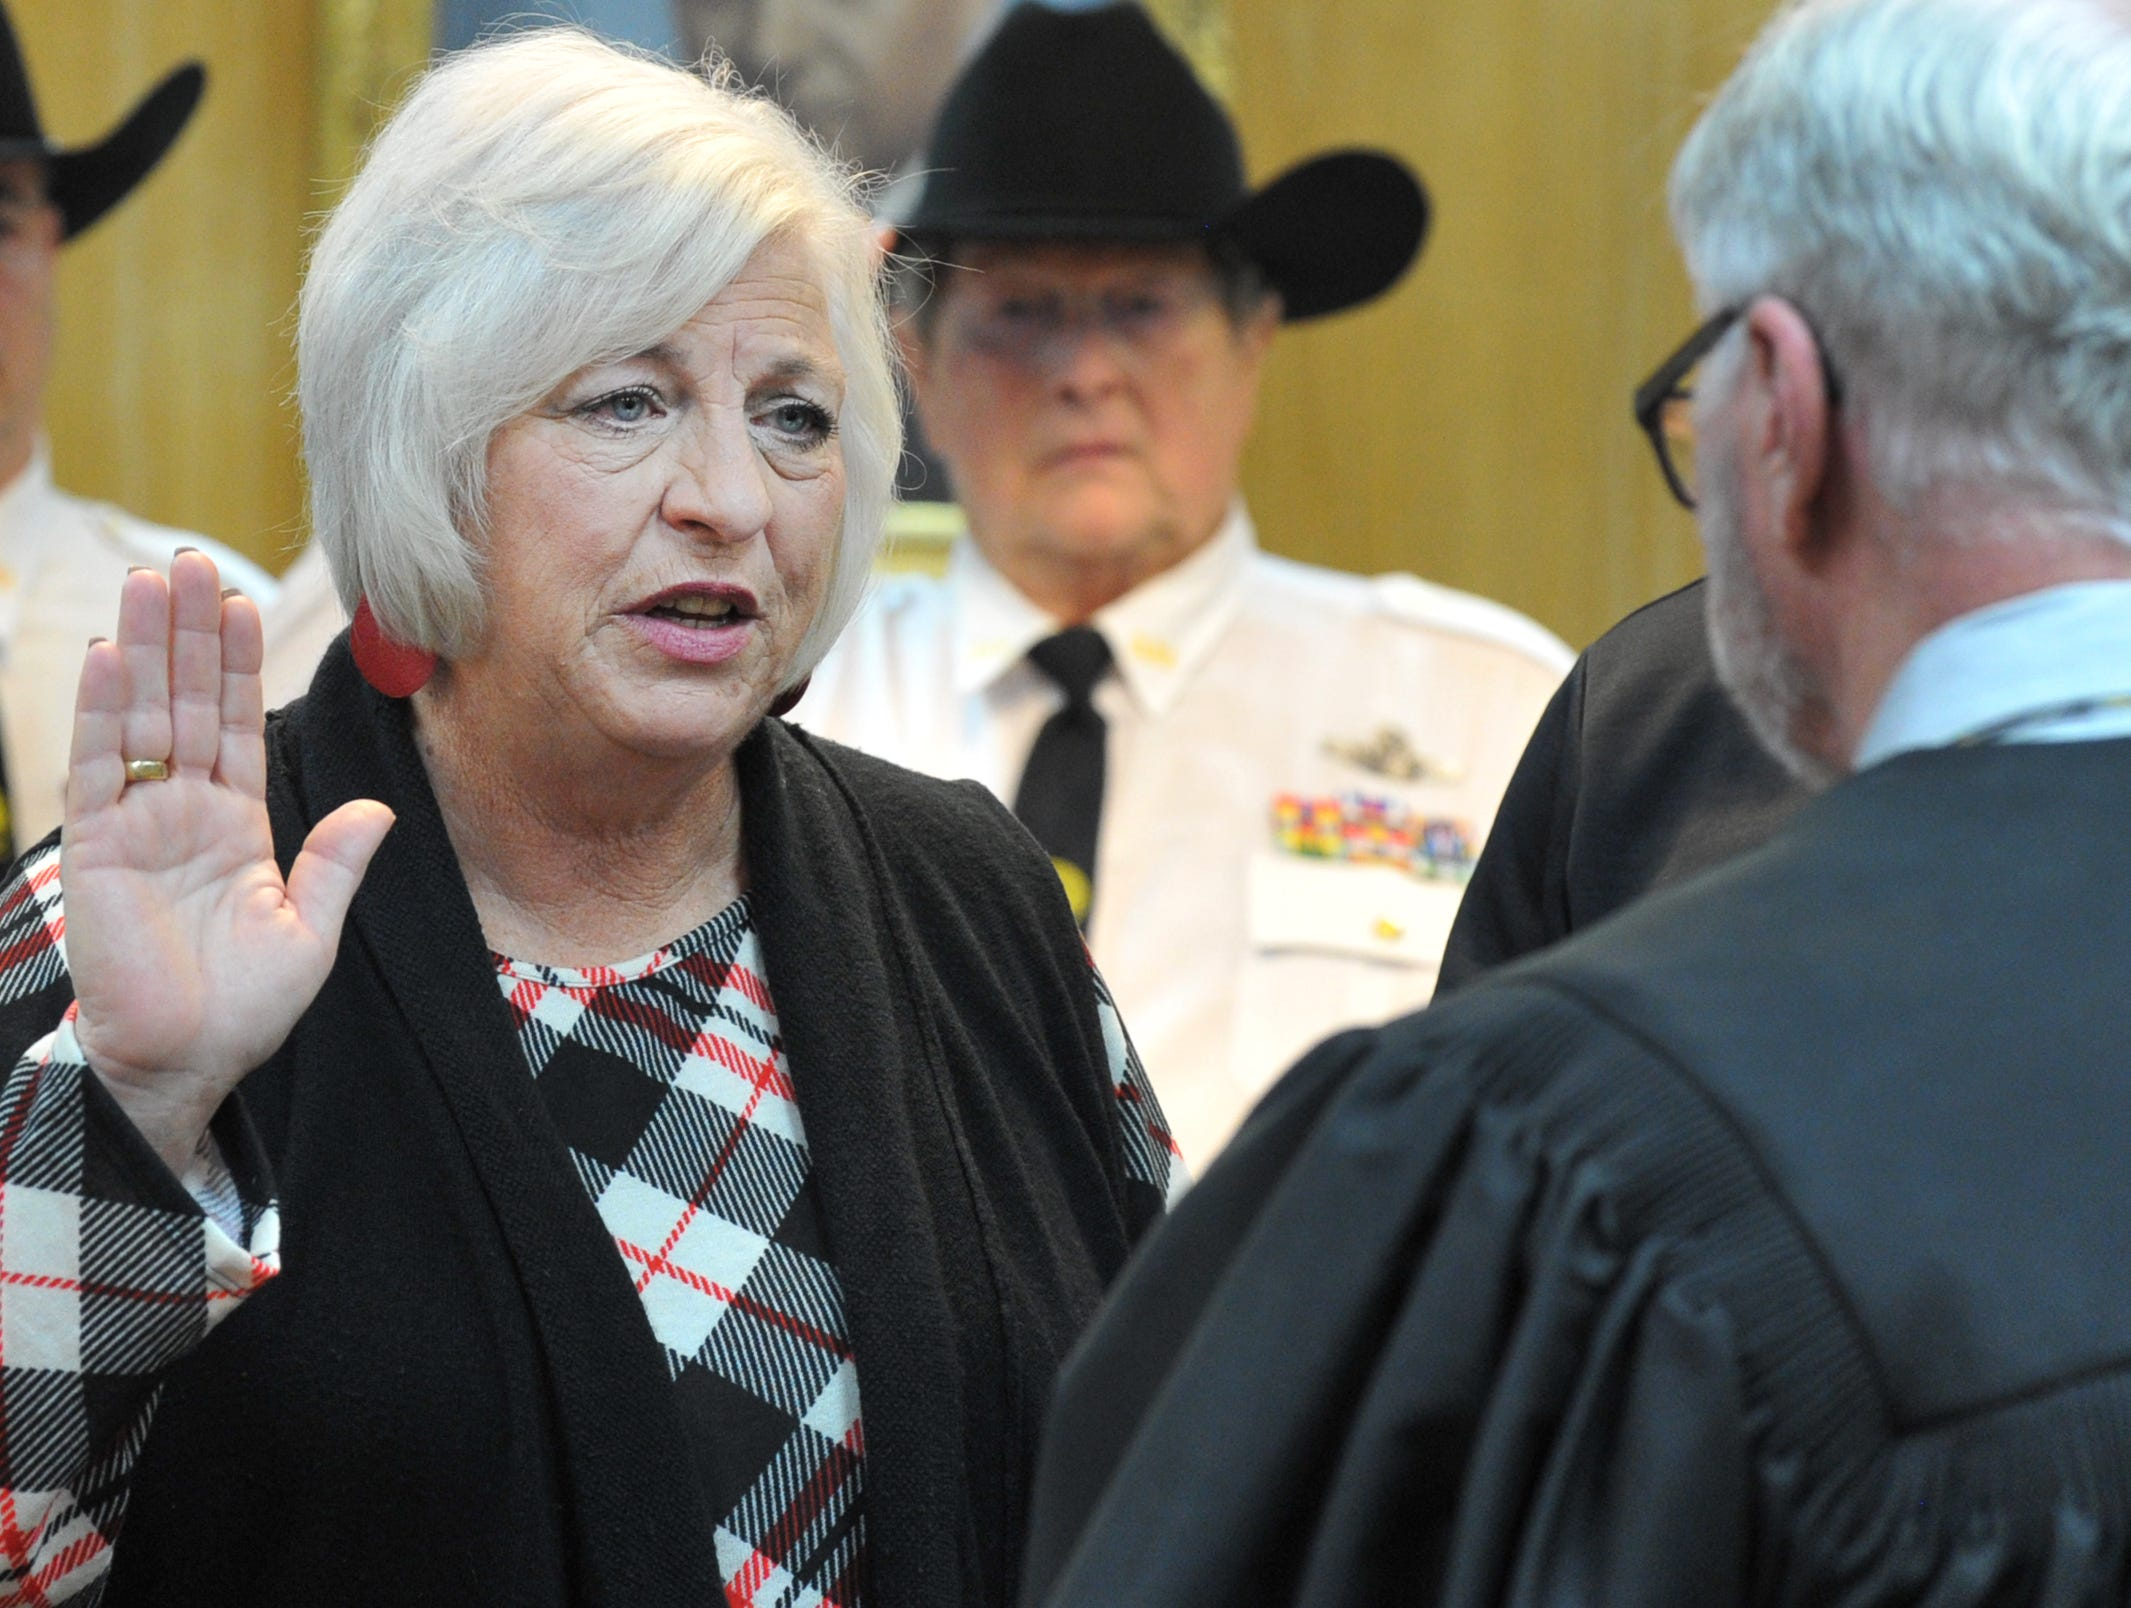 Justice of the Peace Judy was sworn in during a ceremony held in the 30th district courtroom, Tuesday morning.